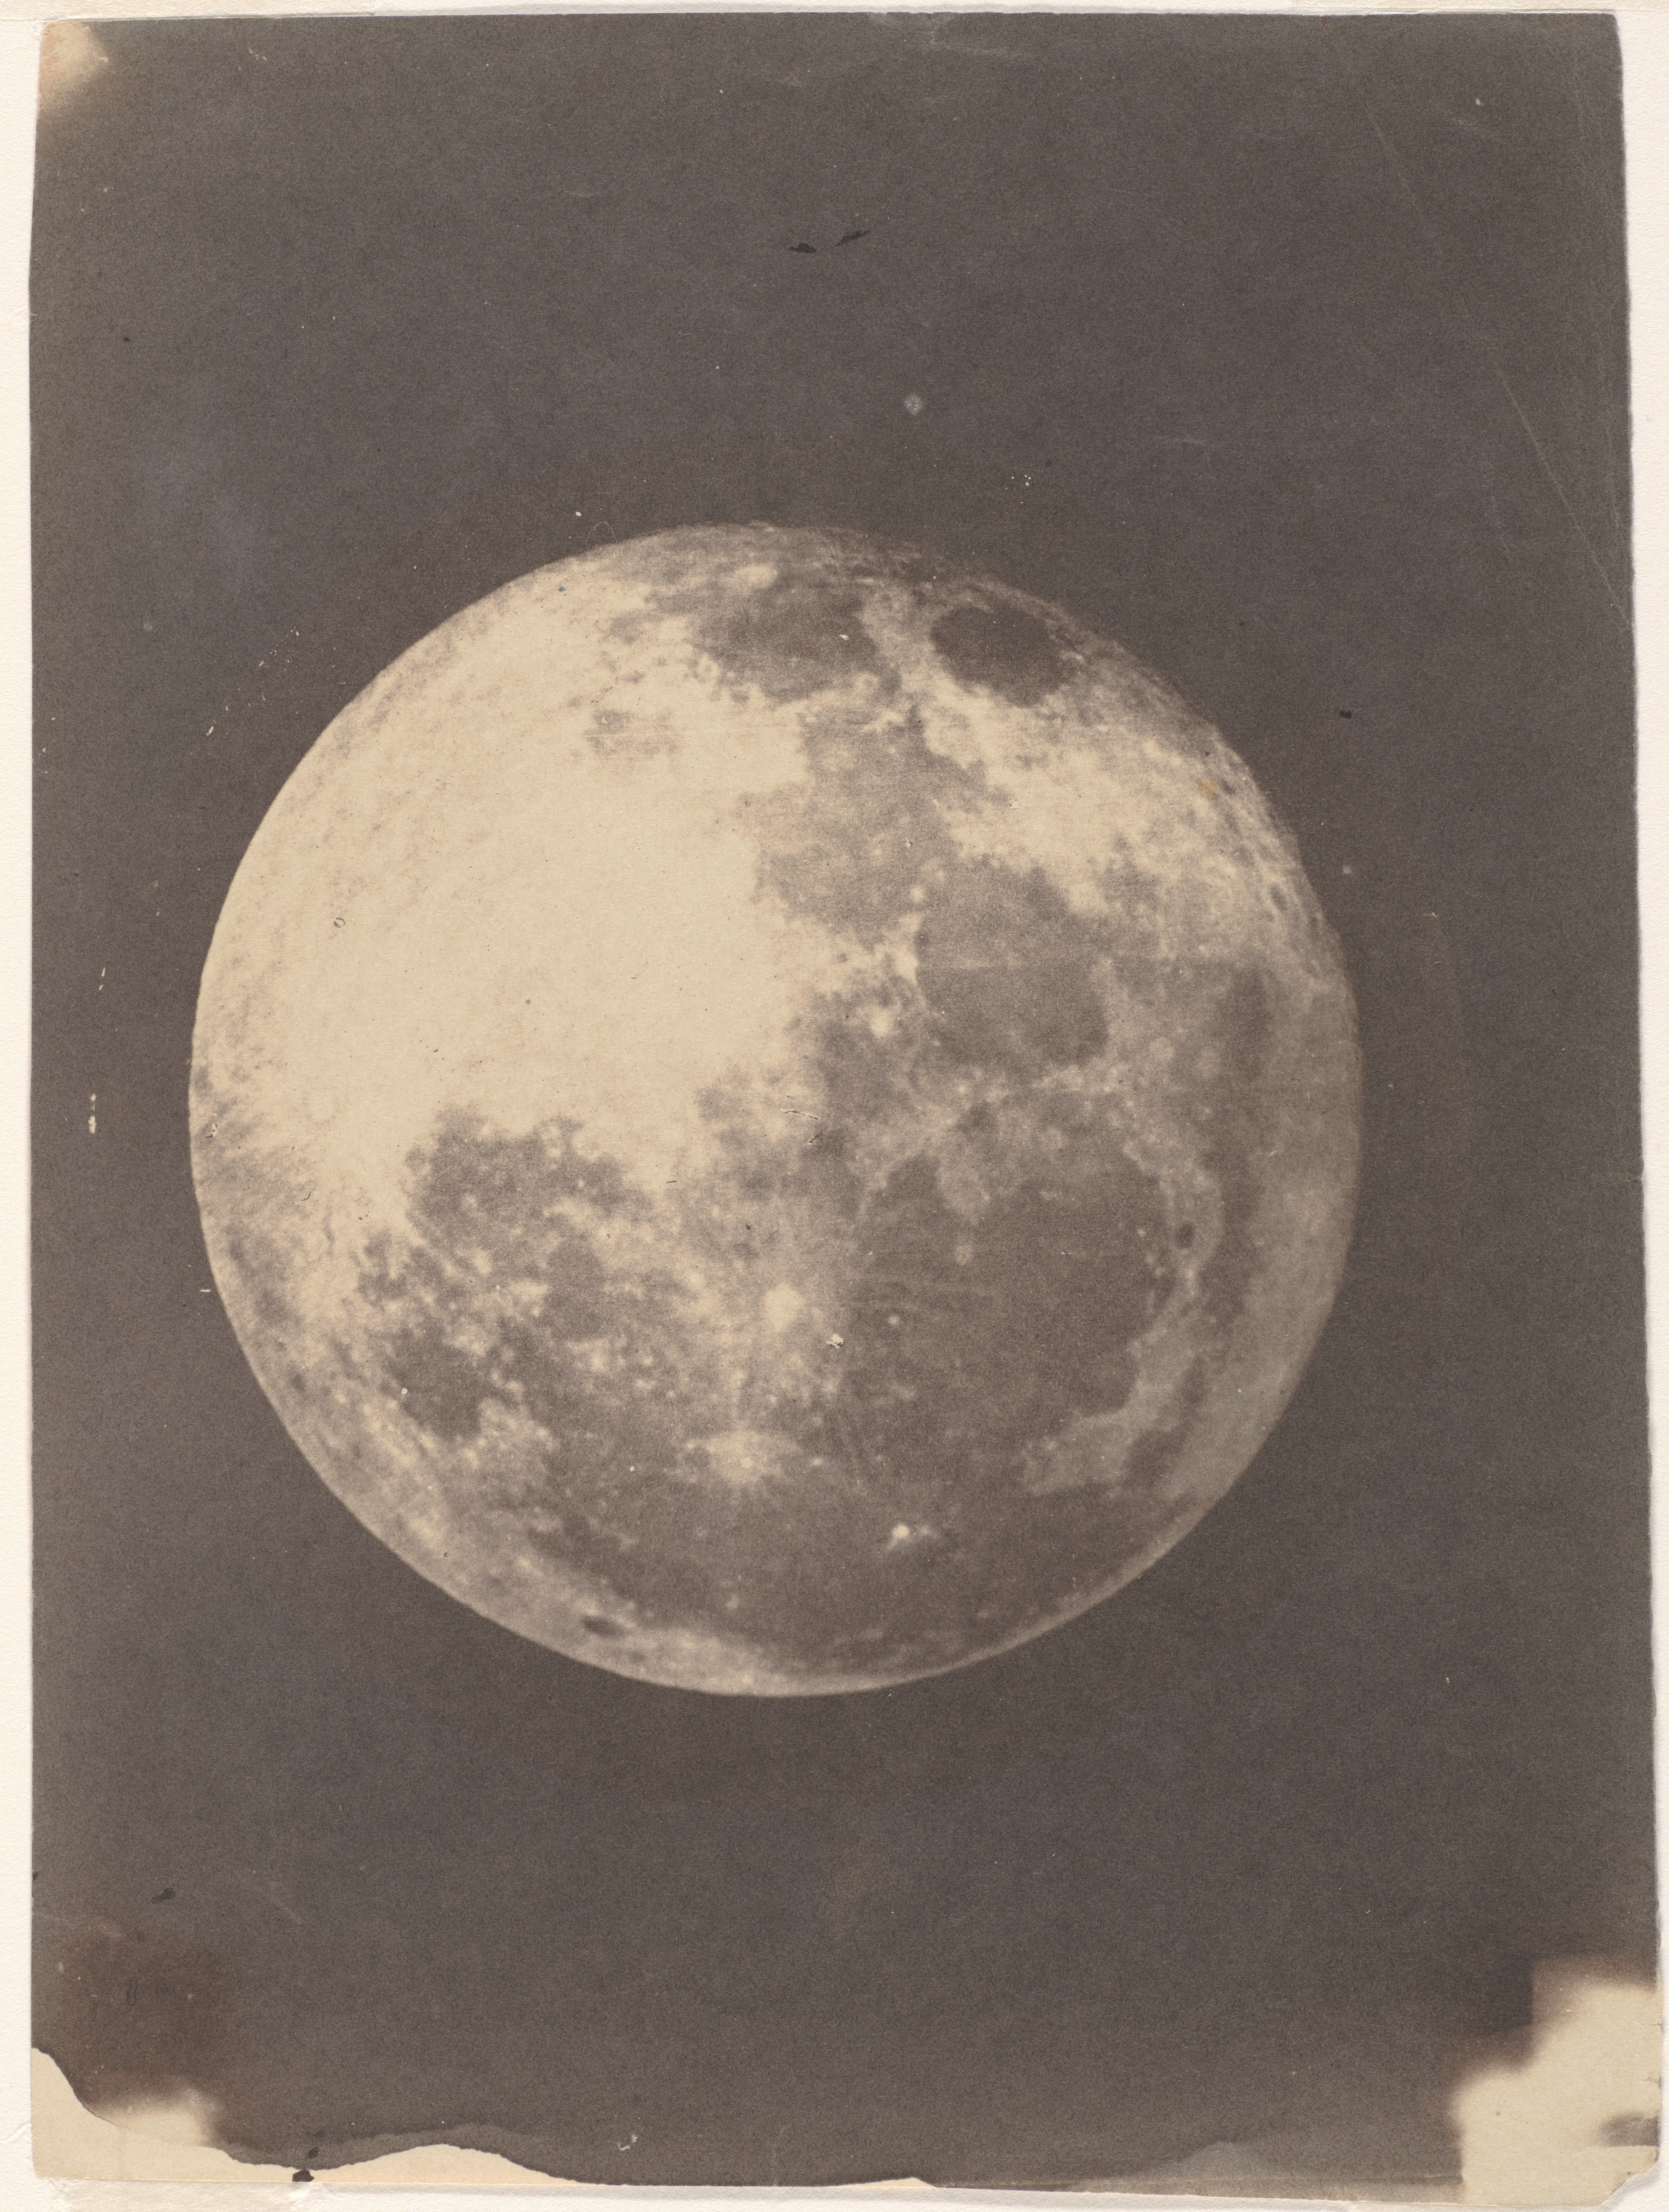 John Adams Whipple, (American, 1822–1891); James Wallace Black, (American, 1825–1896); The Moon, 1857–60; Salted paper print from glass negative; 8 7⁄16 x 6 5⁄16 in. (21.4 x 16 cm)